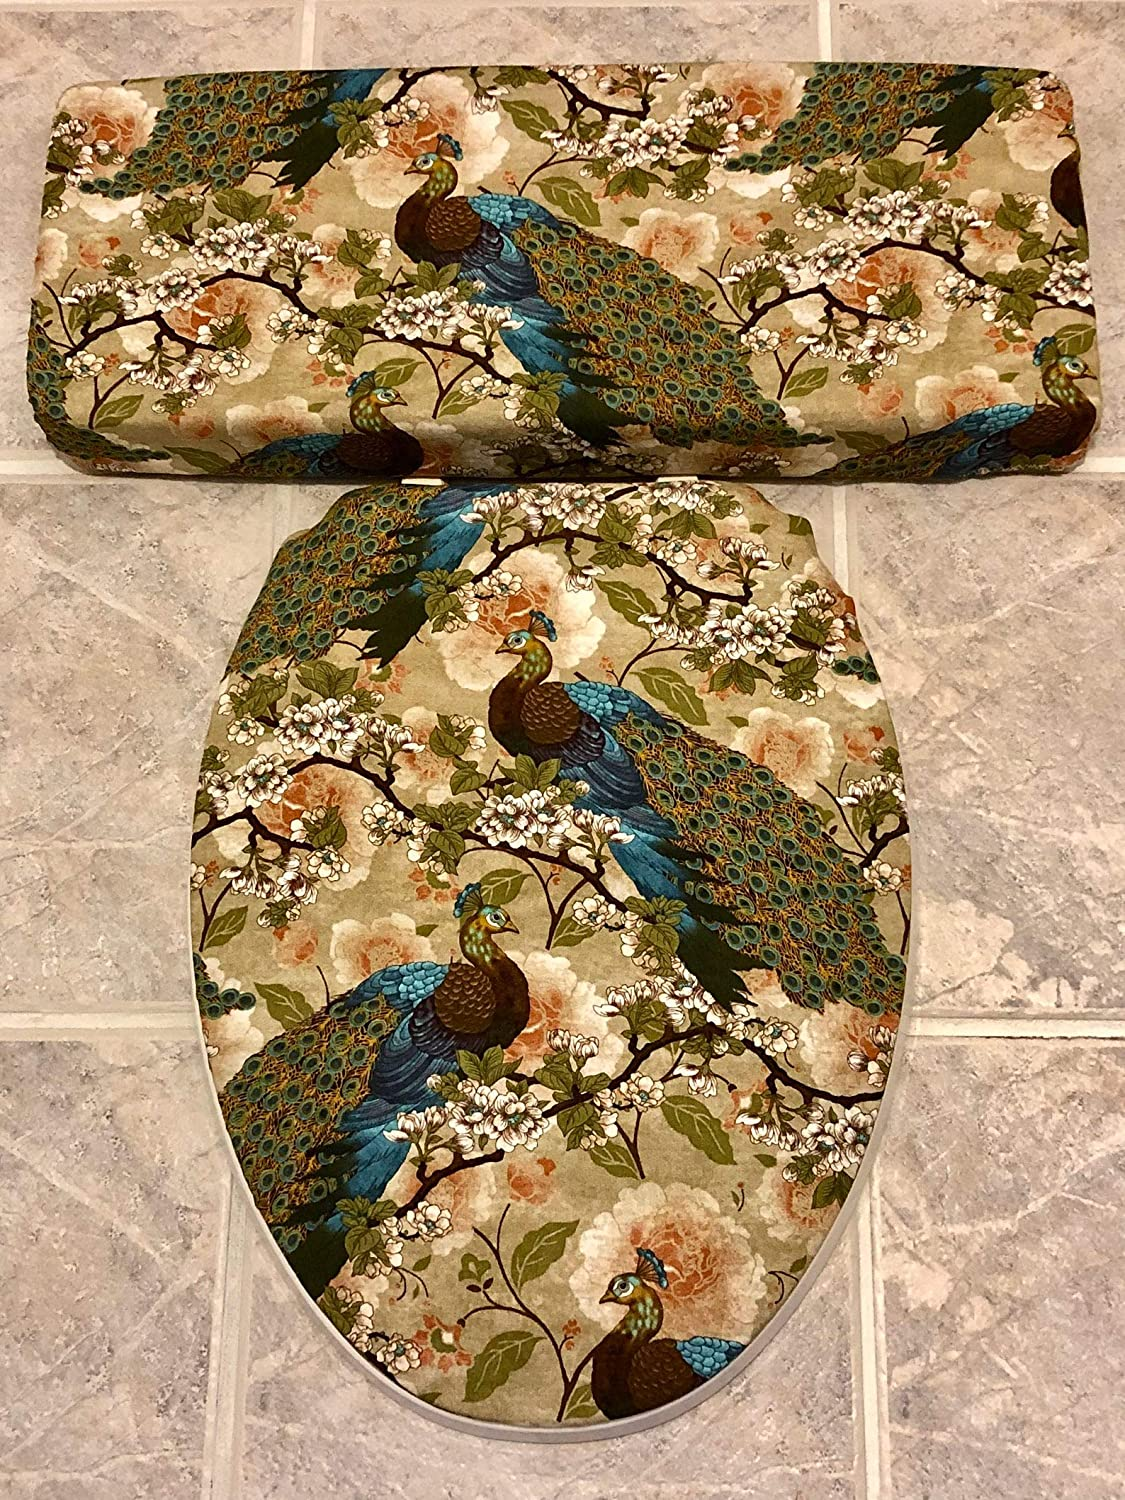 Peacock Toilet Seat Cover set by Audrey Belisle